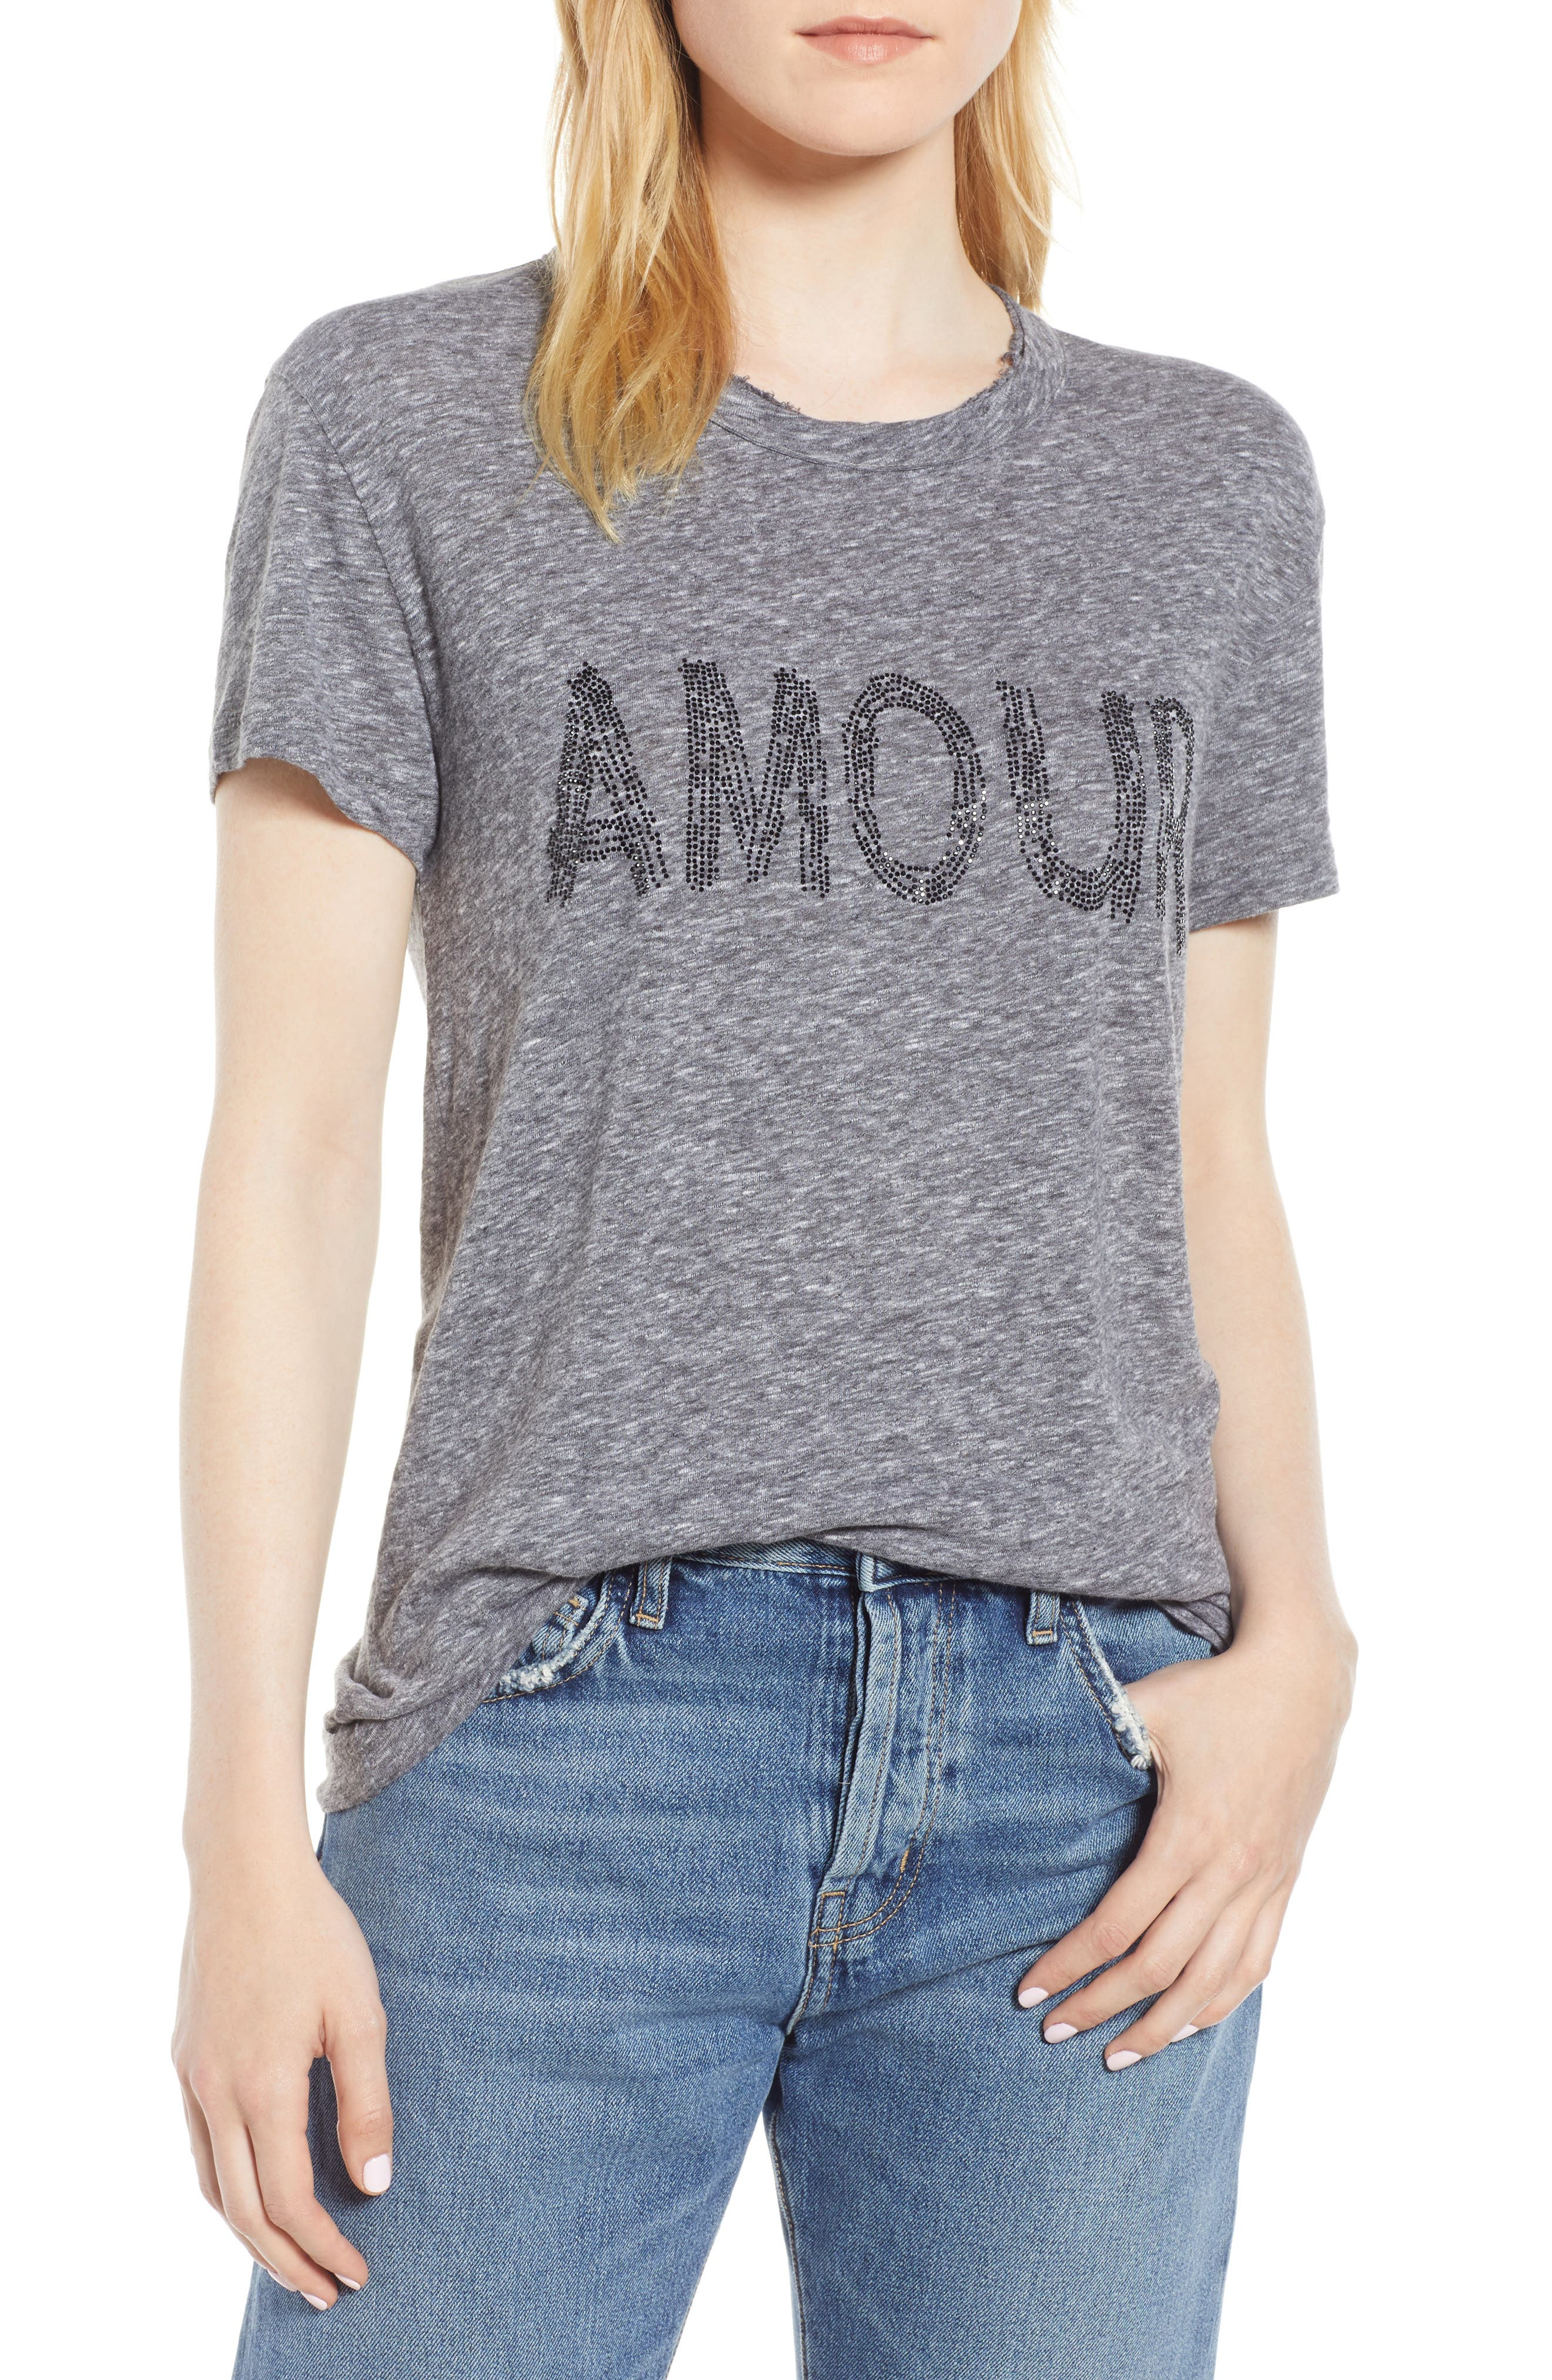 Embellished Graphic Crewneck Tee in Gris